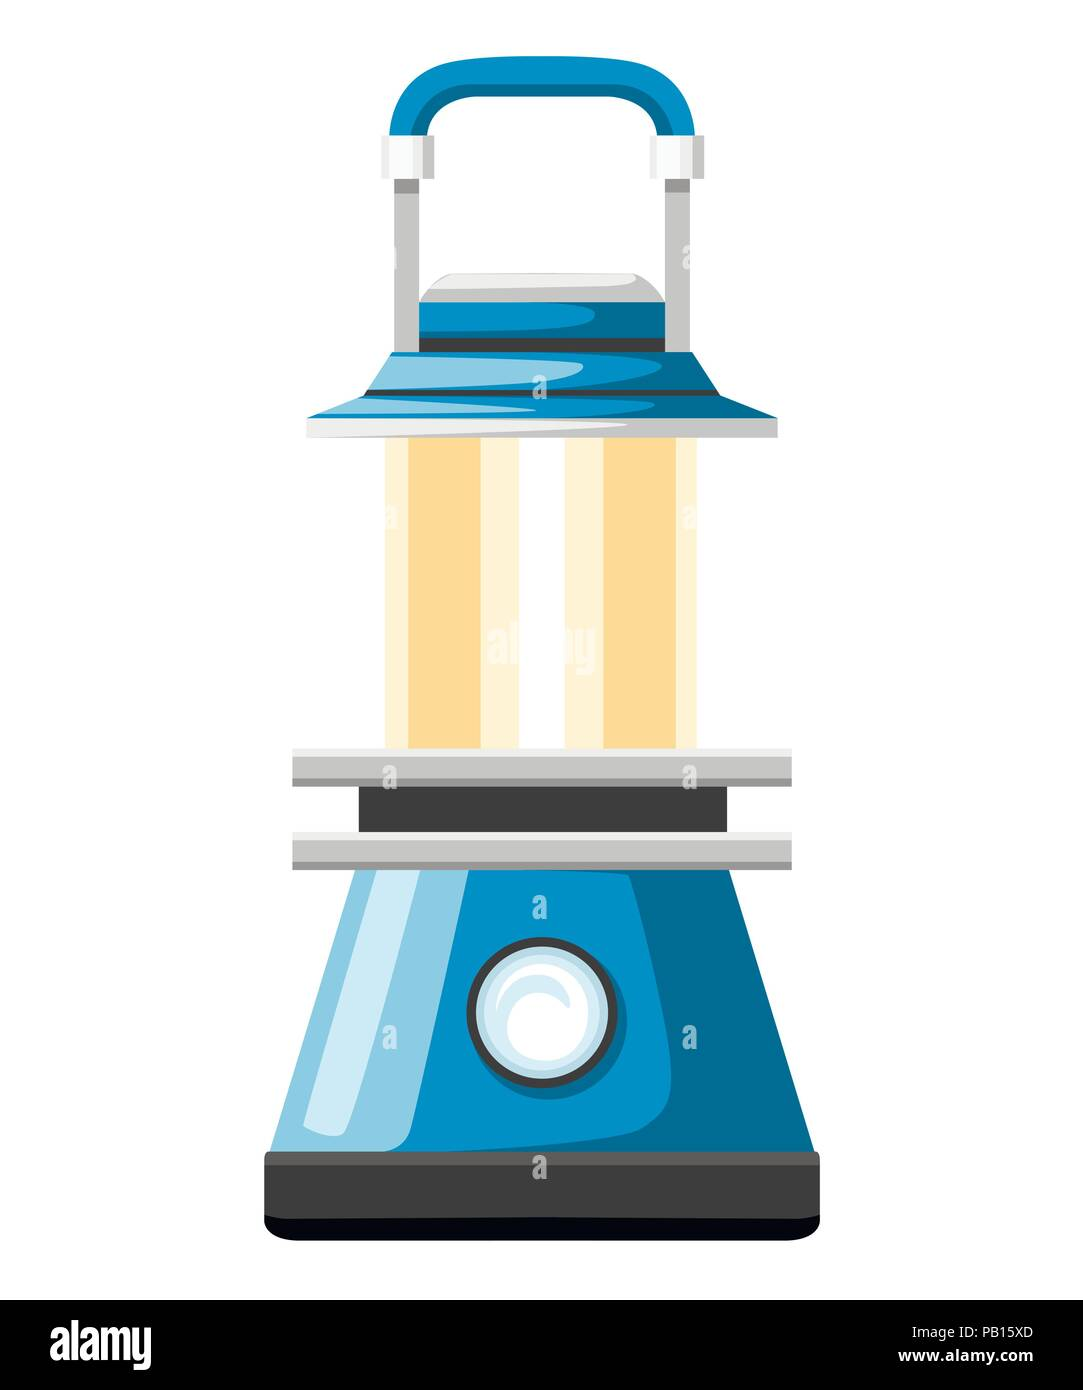 Modern blue oil lamp. Camping lantern. Looks like a gas lamp. Flat vector illustration isolated on white background. - Stock Vector